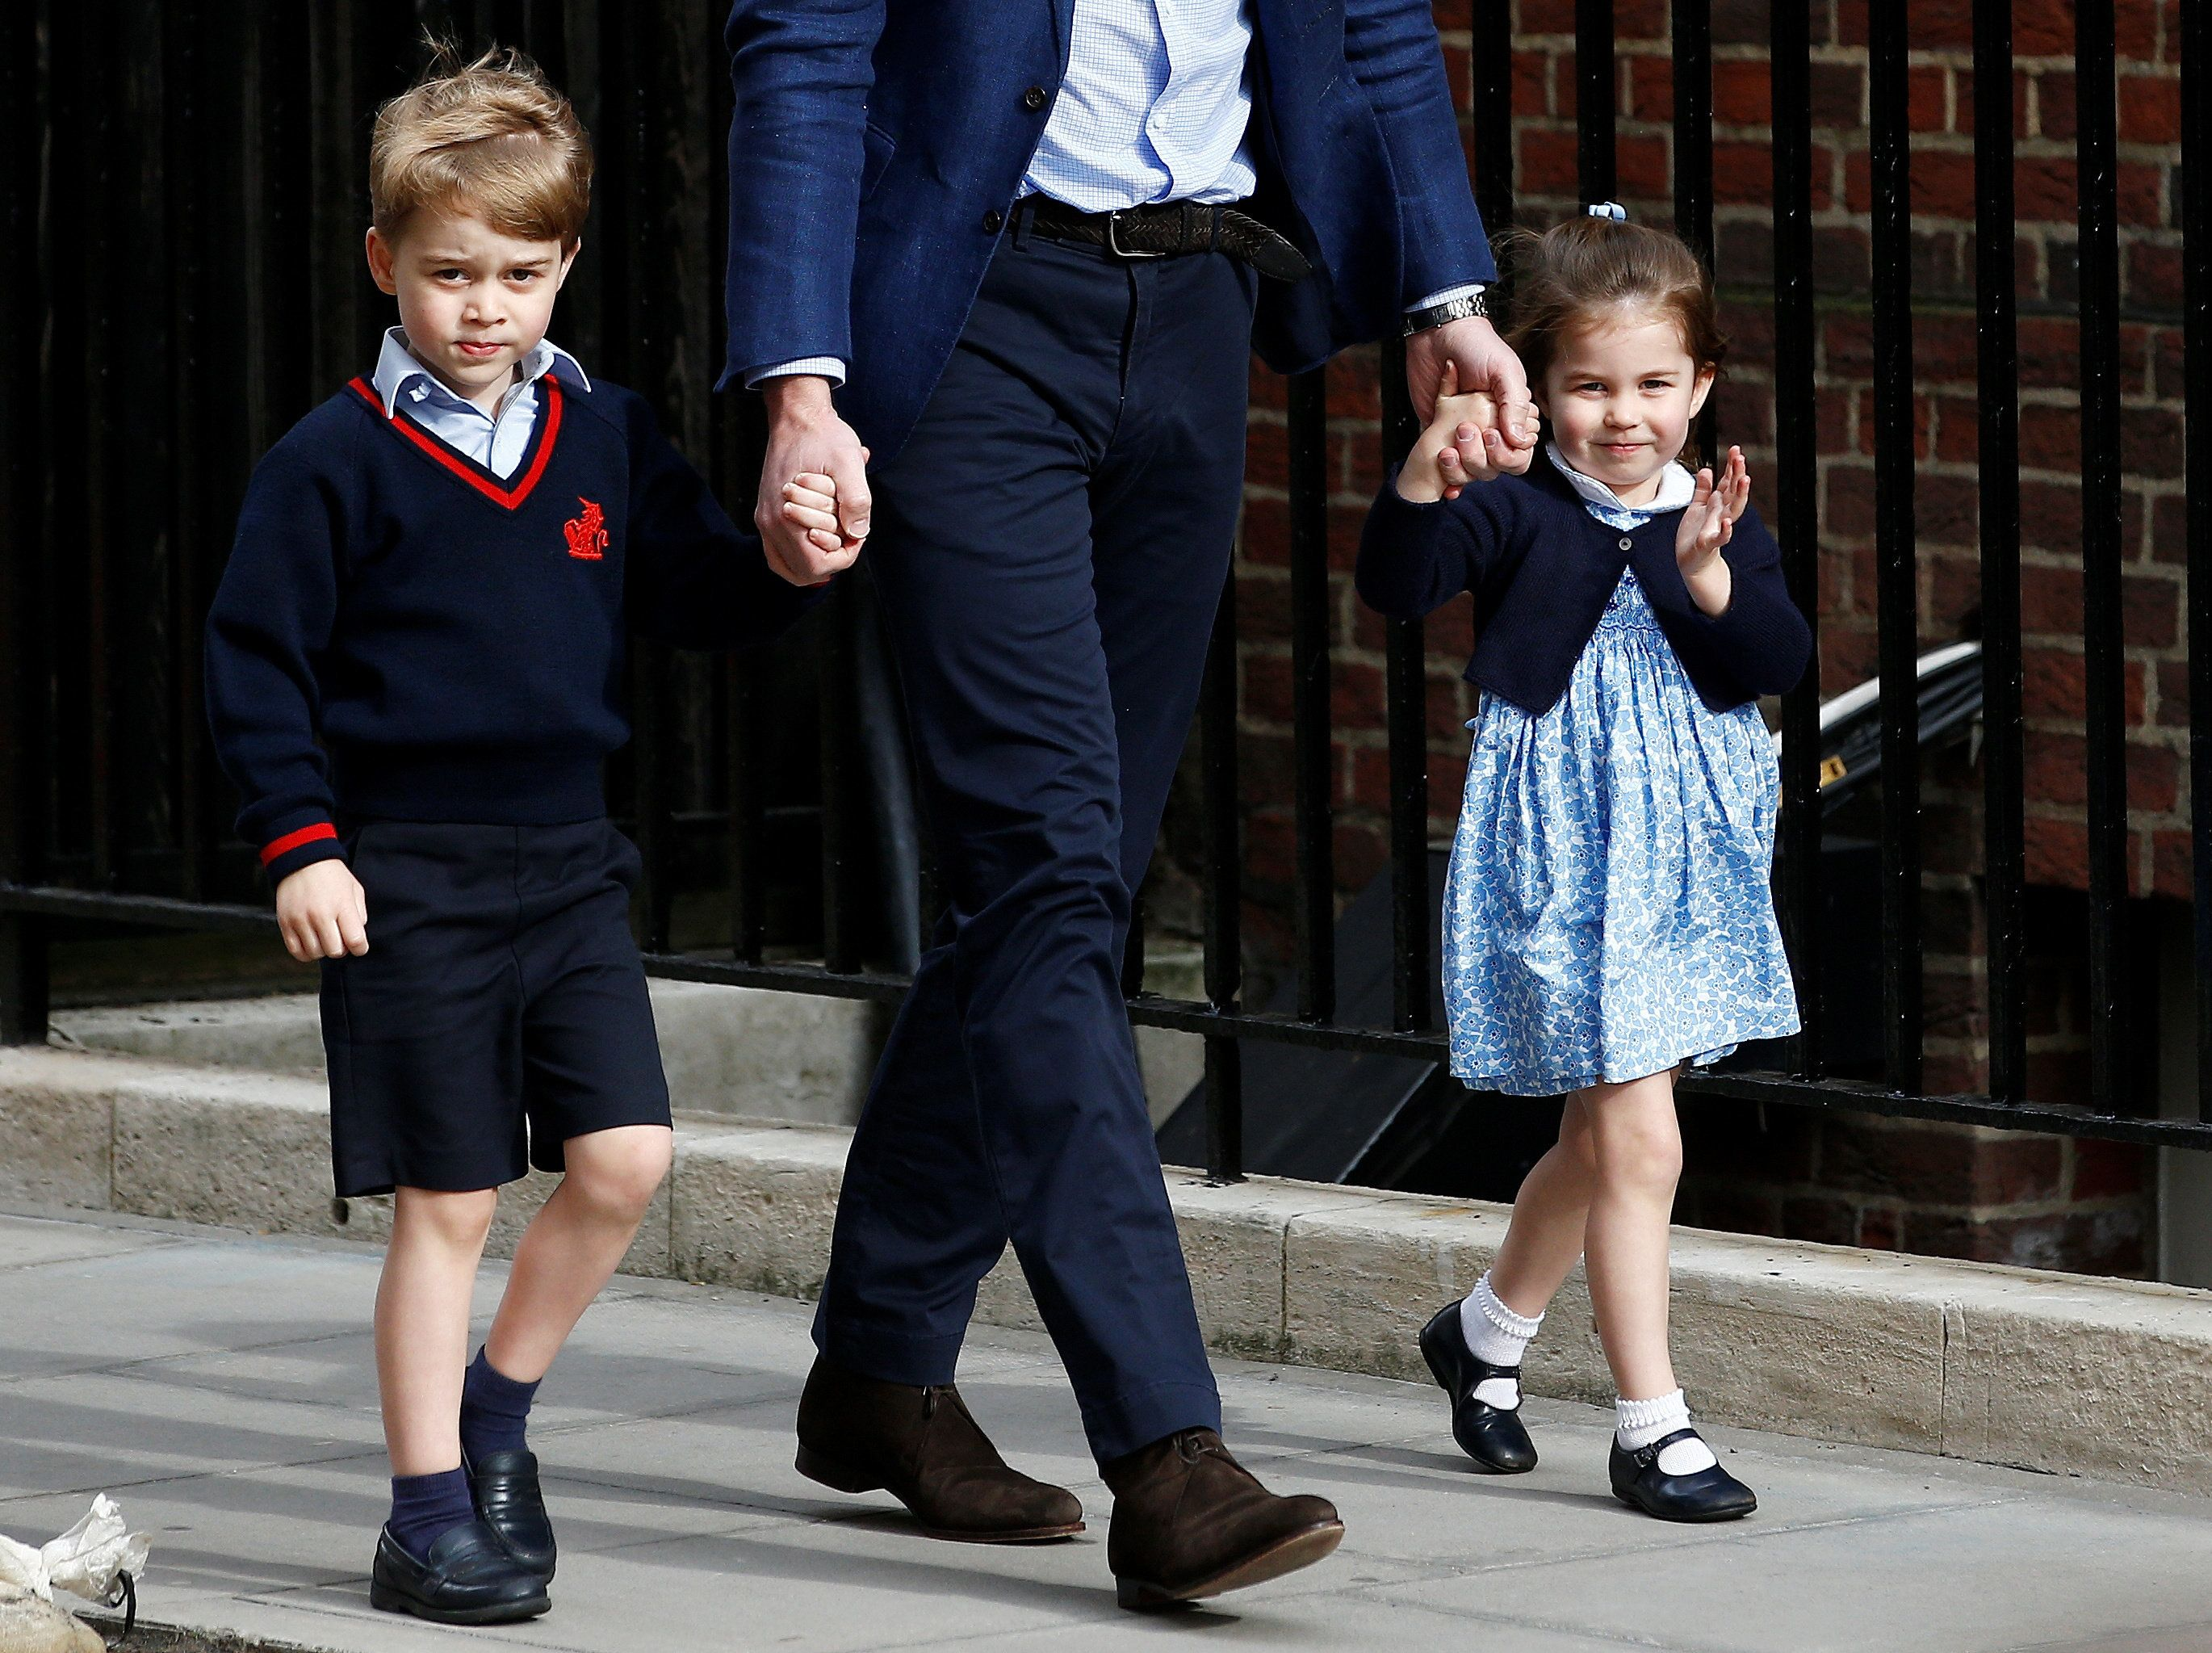 Prince George and Princess Charlottearrive at the Lindo Wing with their father, Prince William, after their mother gave